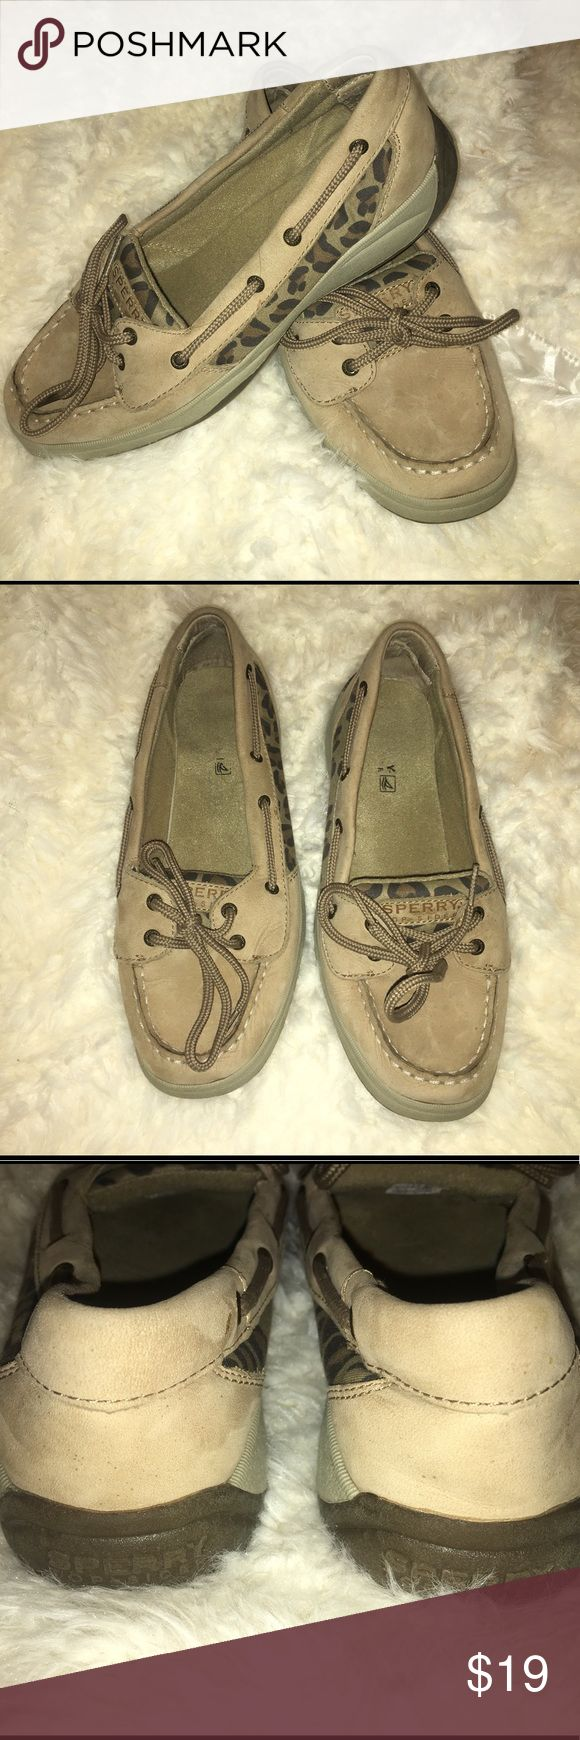 Leopard Sperry's Size 5 Good condition leopard Sperry Top Siders Size 5. Worm several times, normal wear and tear but still in good condition. Sperry Shoes Flats & Loafers